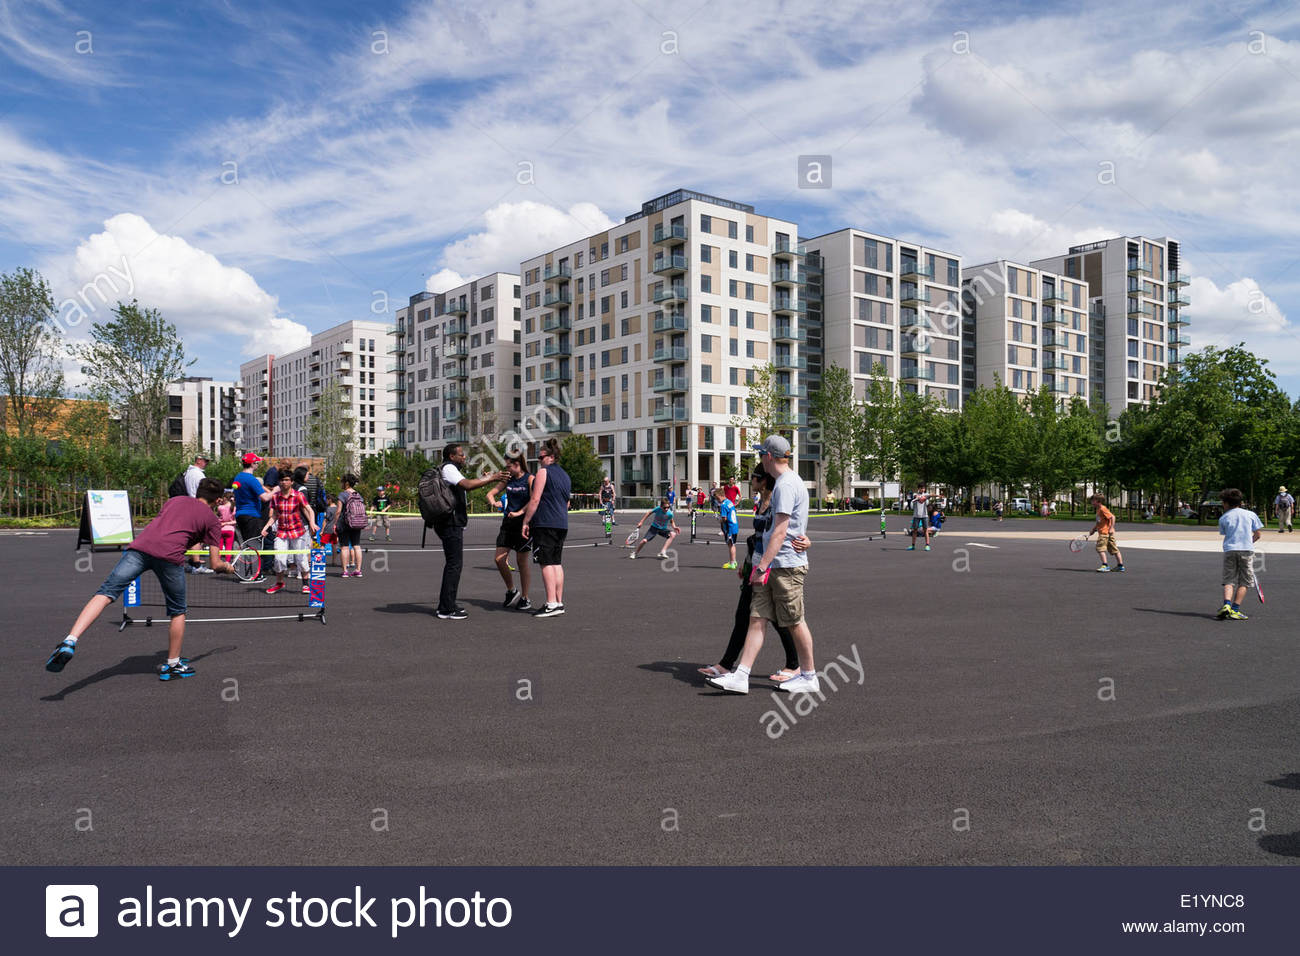 East Village - new homes and apartments on the former London 2012 Olympic Village site: Stratford, London. Stock Photo